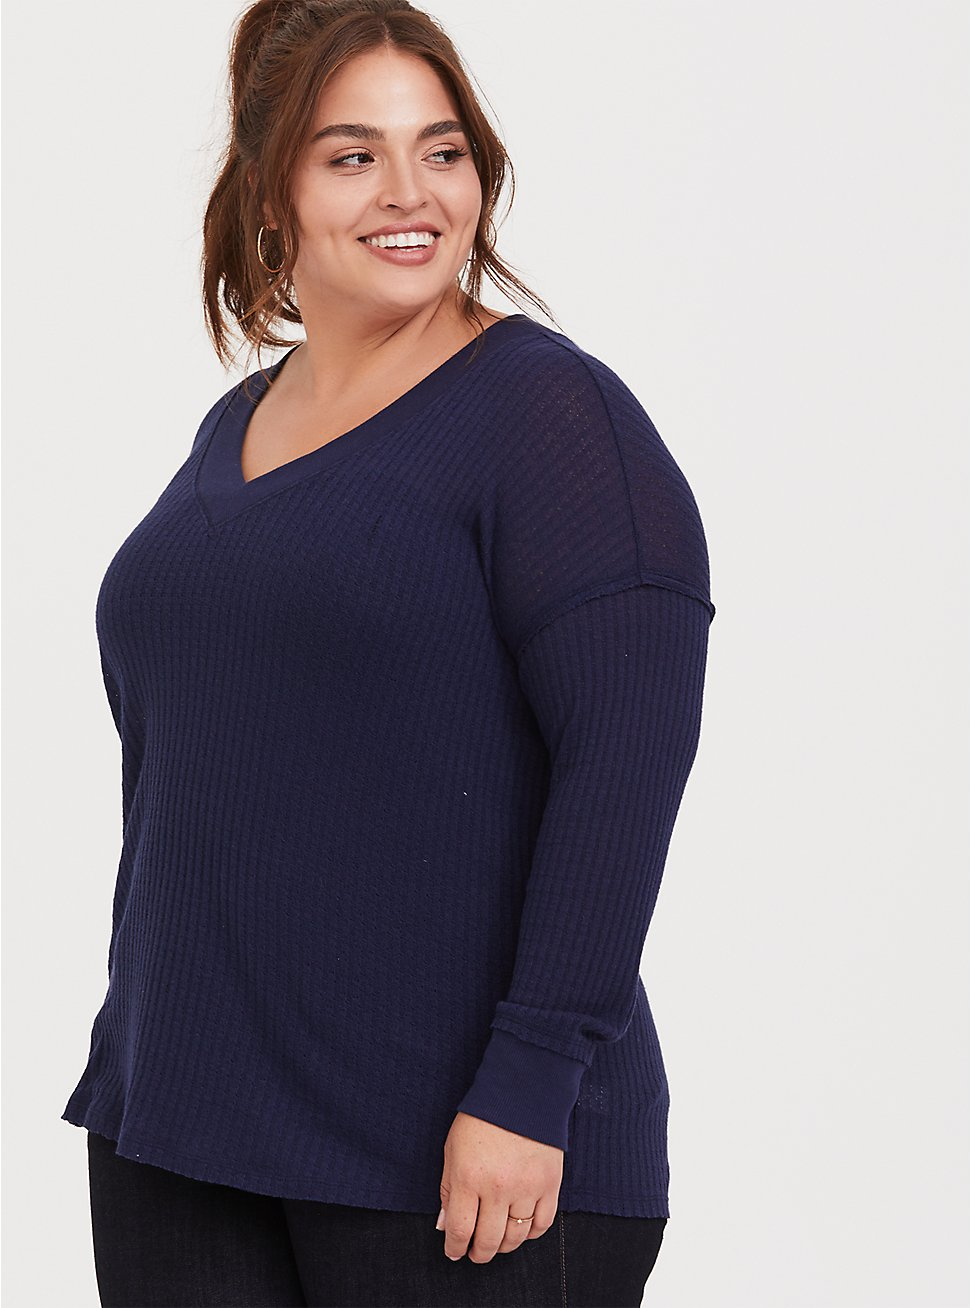 Navy Waffle Knit V-Neck Long Sleeve Tee, PEACOAT, hi-res